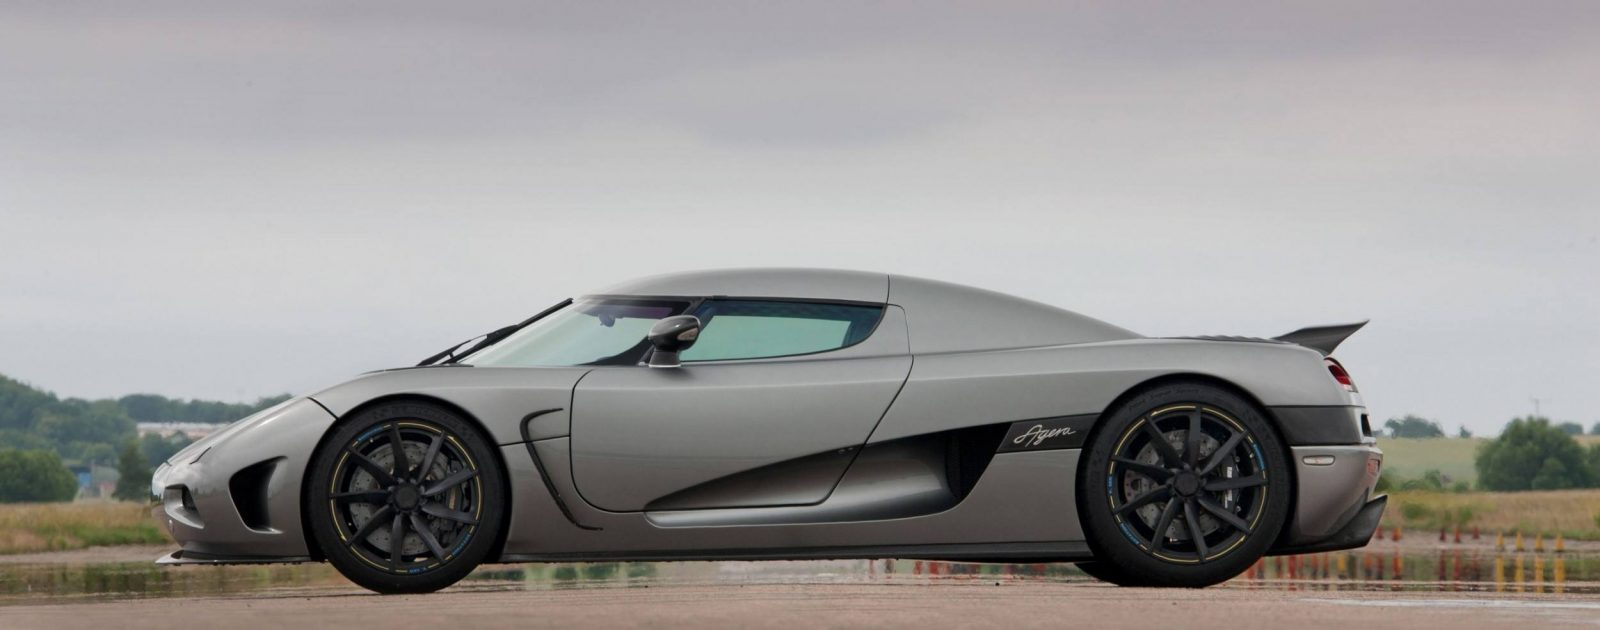 Koenigsegg Agera R Adds 240HP for Potential 280MPH Vmax of Generva-bound One1 Edition4